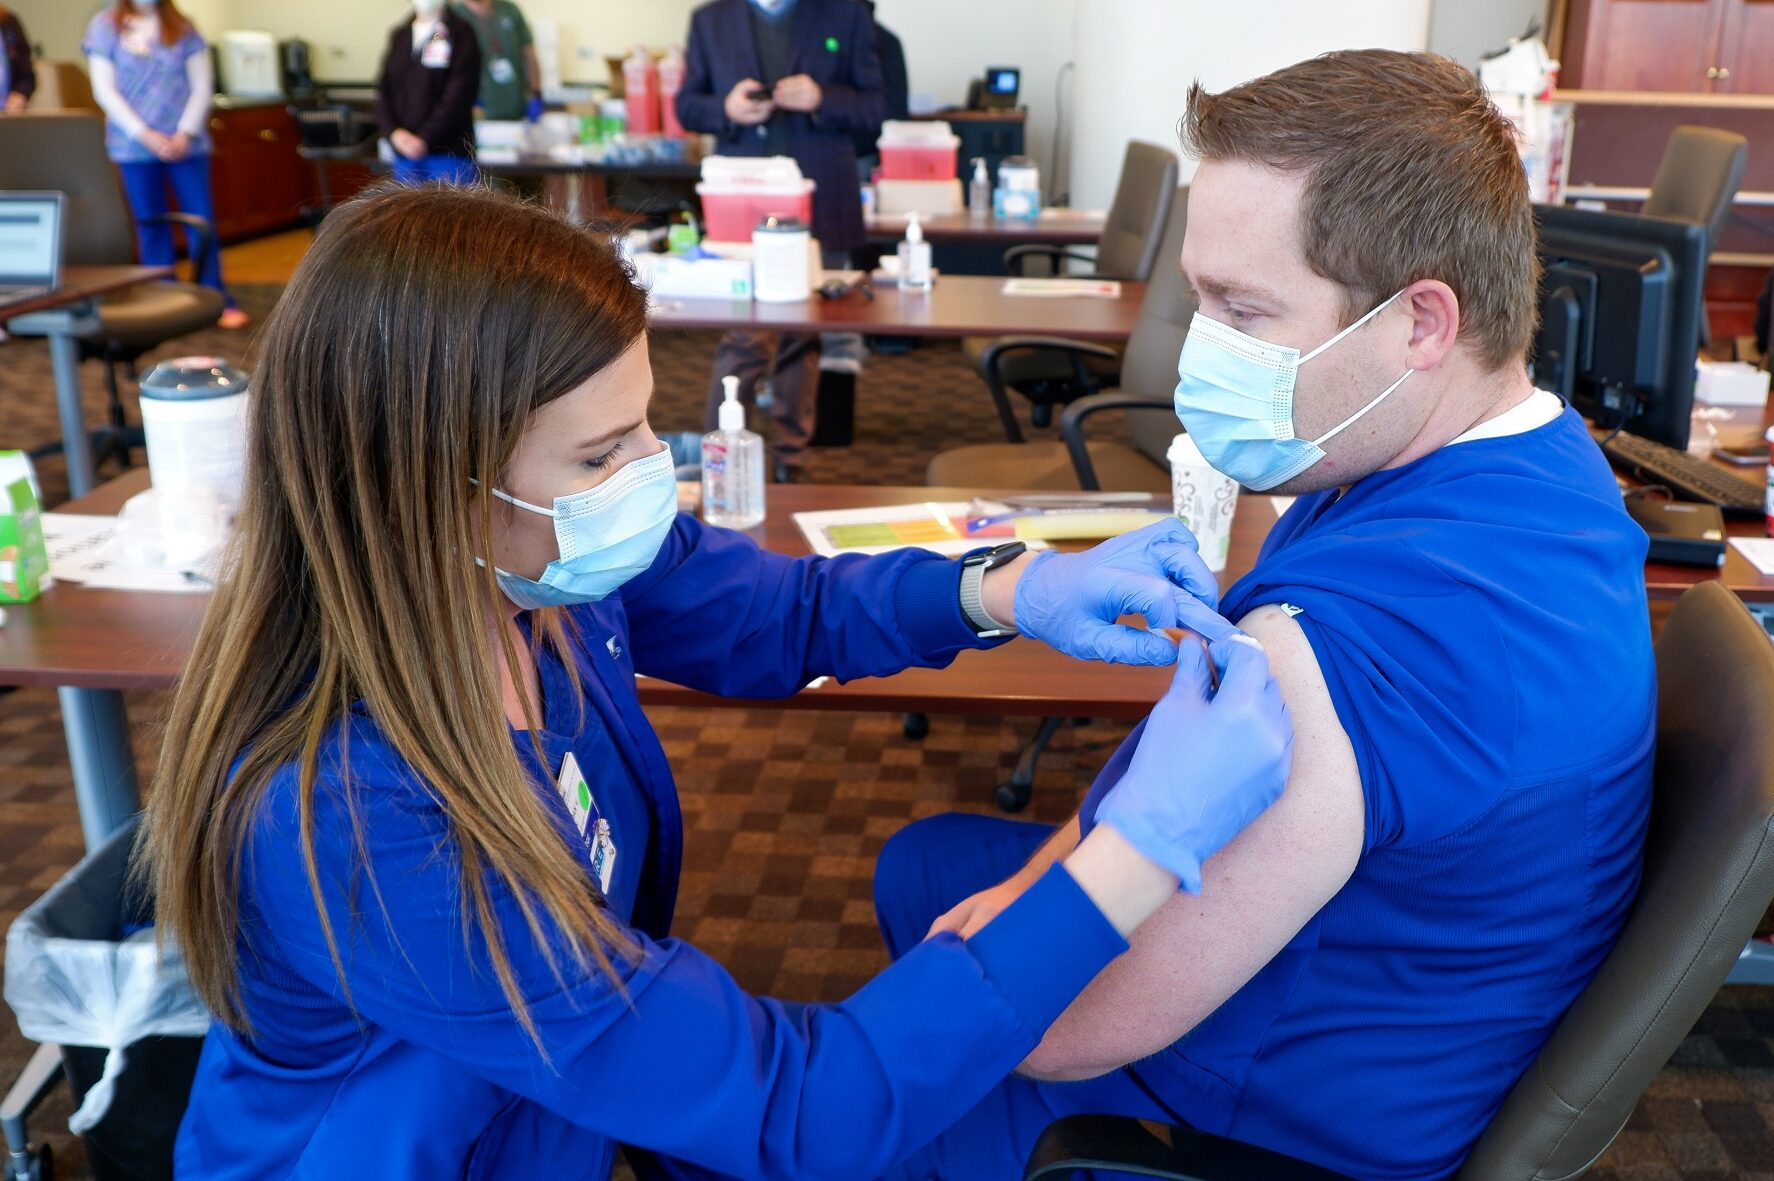 State Rep. Kyle Mullica, a Northglenn Democrat, recieves a dose of Pfizer's coronavirus vaccine on Wednesday, Dec. 16, 2020. Mullica is also an emergency room nurse who has cared for COVID-19 patients for months.